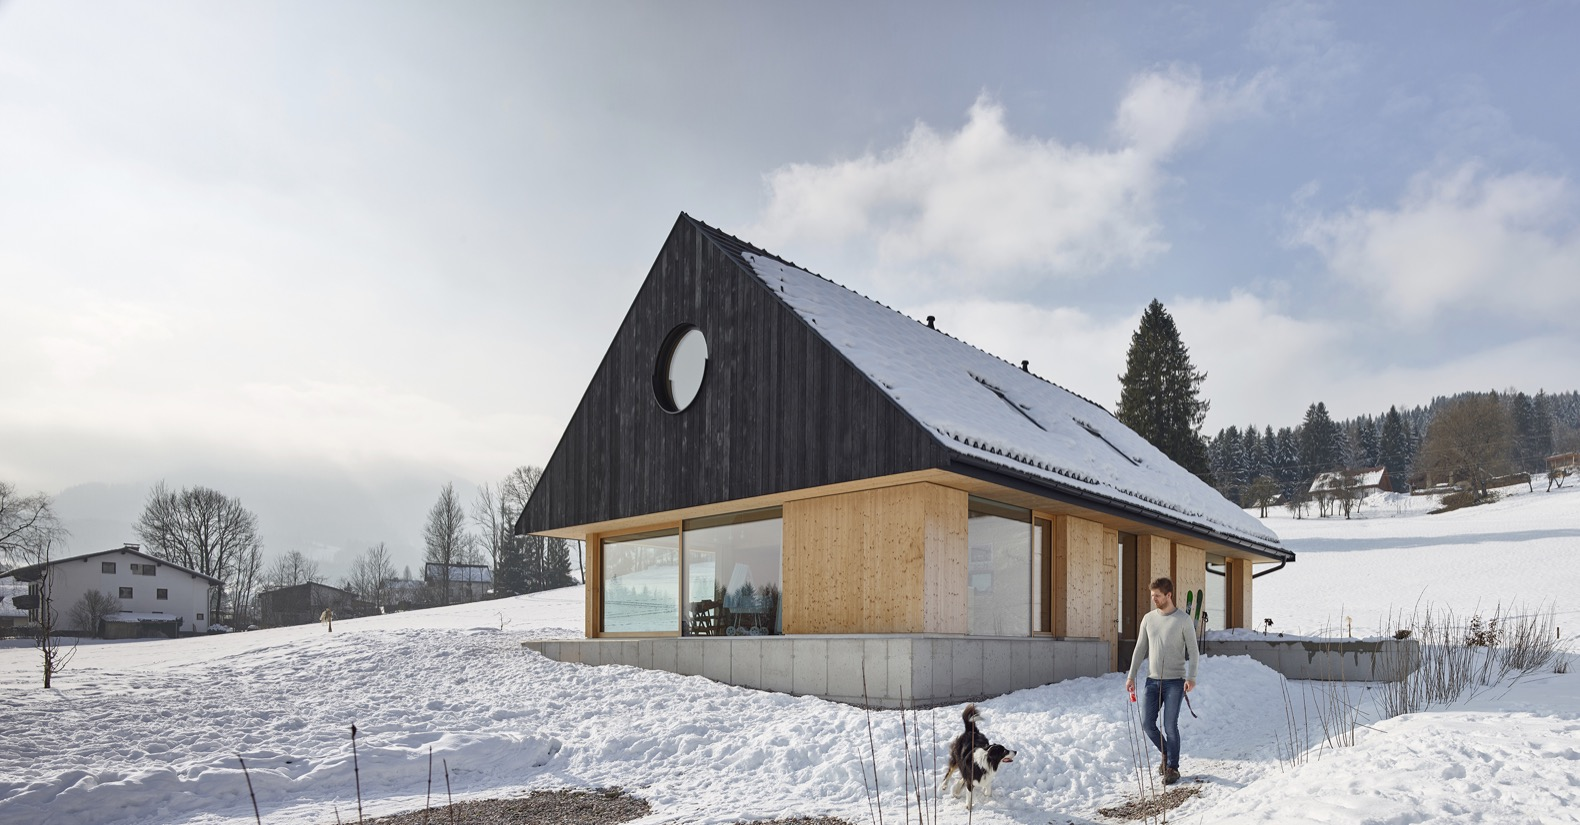 A massive gabled roof protects this minimalist timber home from the snow